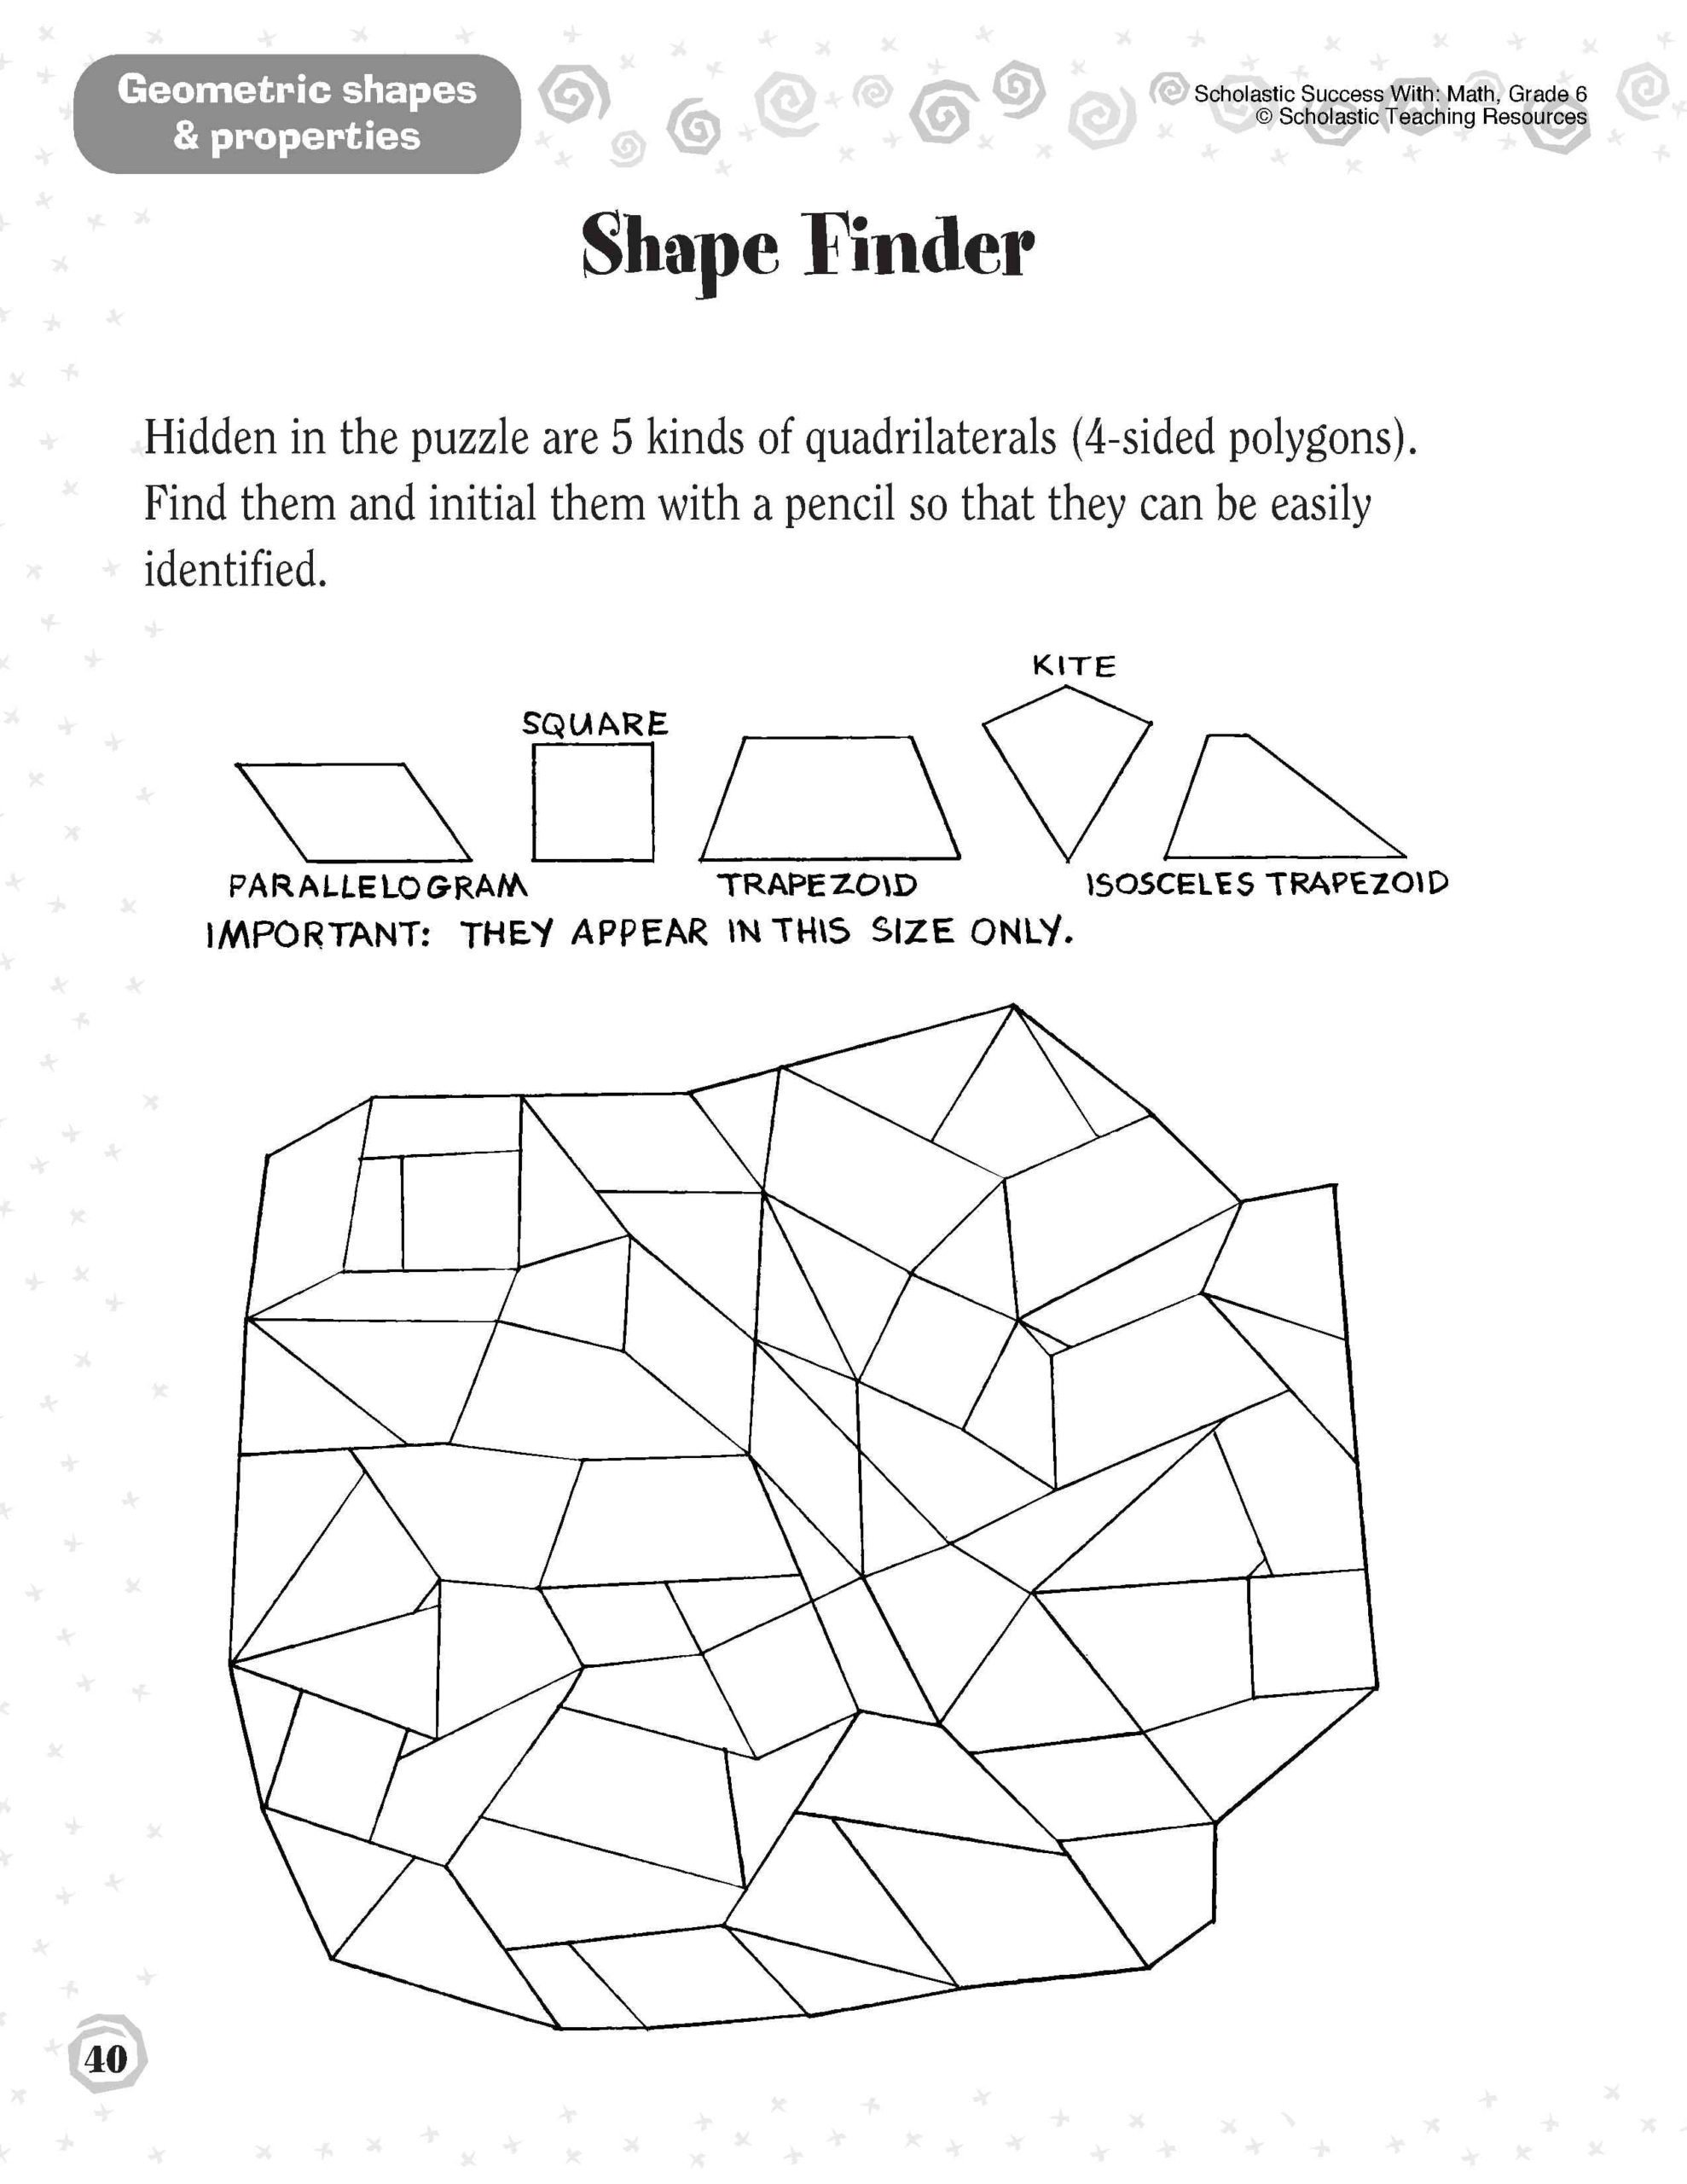 1st grade shapes worksheet printable worksheets and activities 5th math staar practice for to multiplication assessment test adding subtracting word problems multiple choice maker scaled